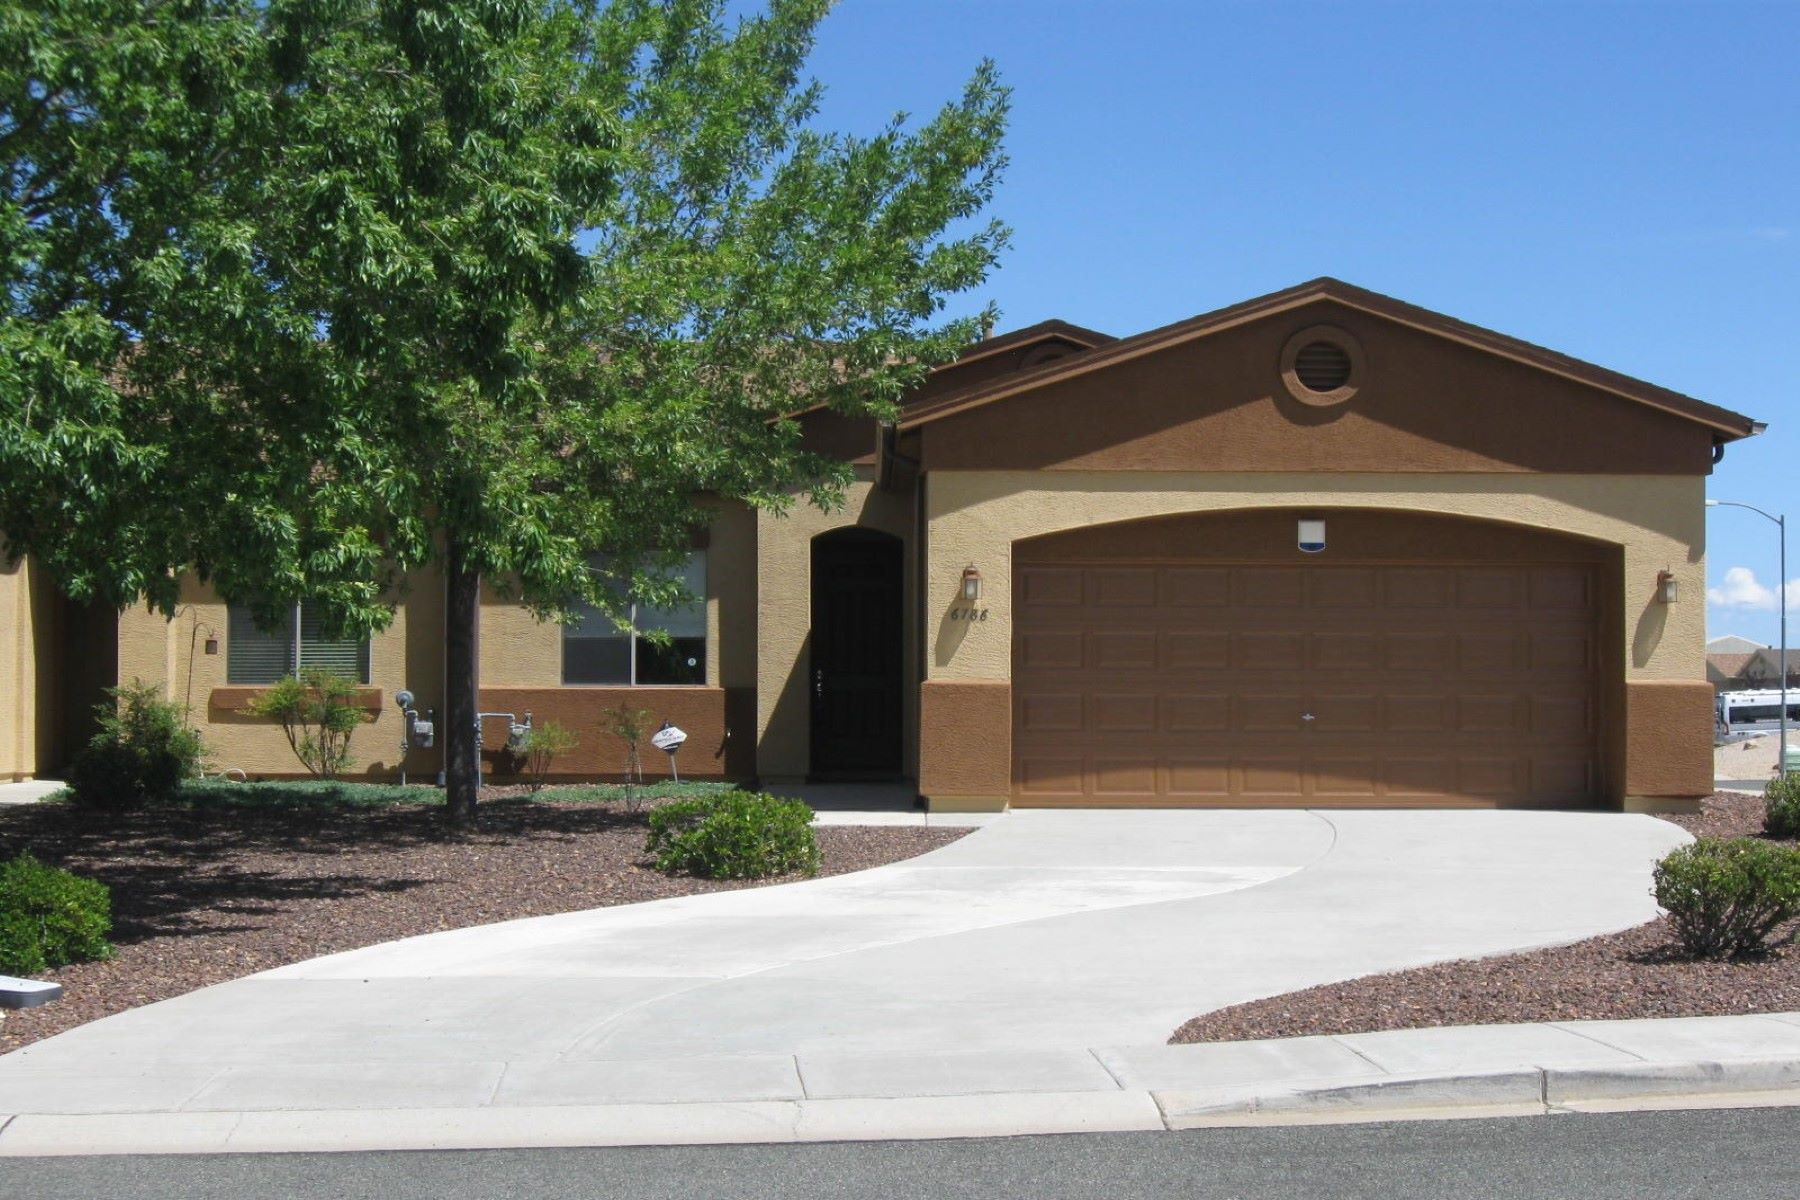 Single Family Homes for Active at Grandville 6786 E Doric Place 5 Prescott Valley, Arizona 86314 United States